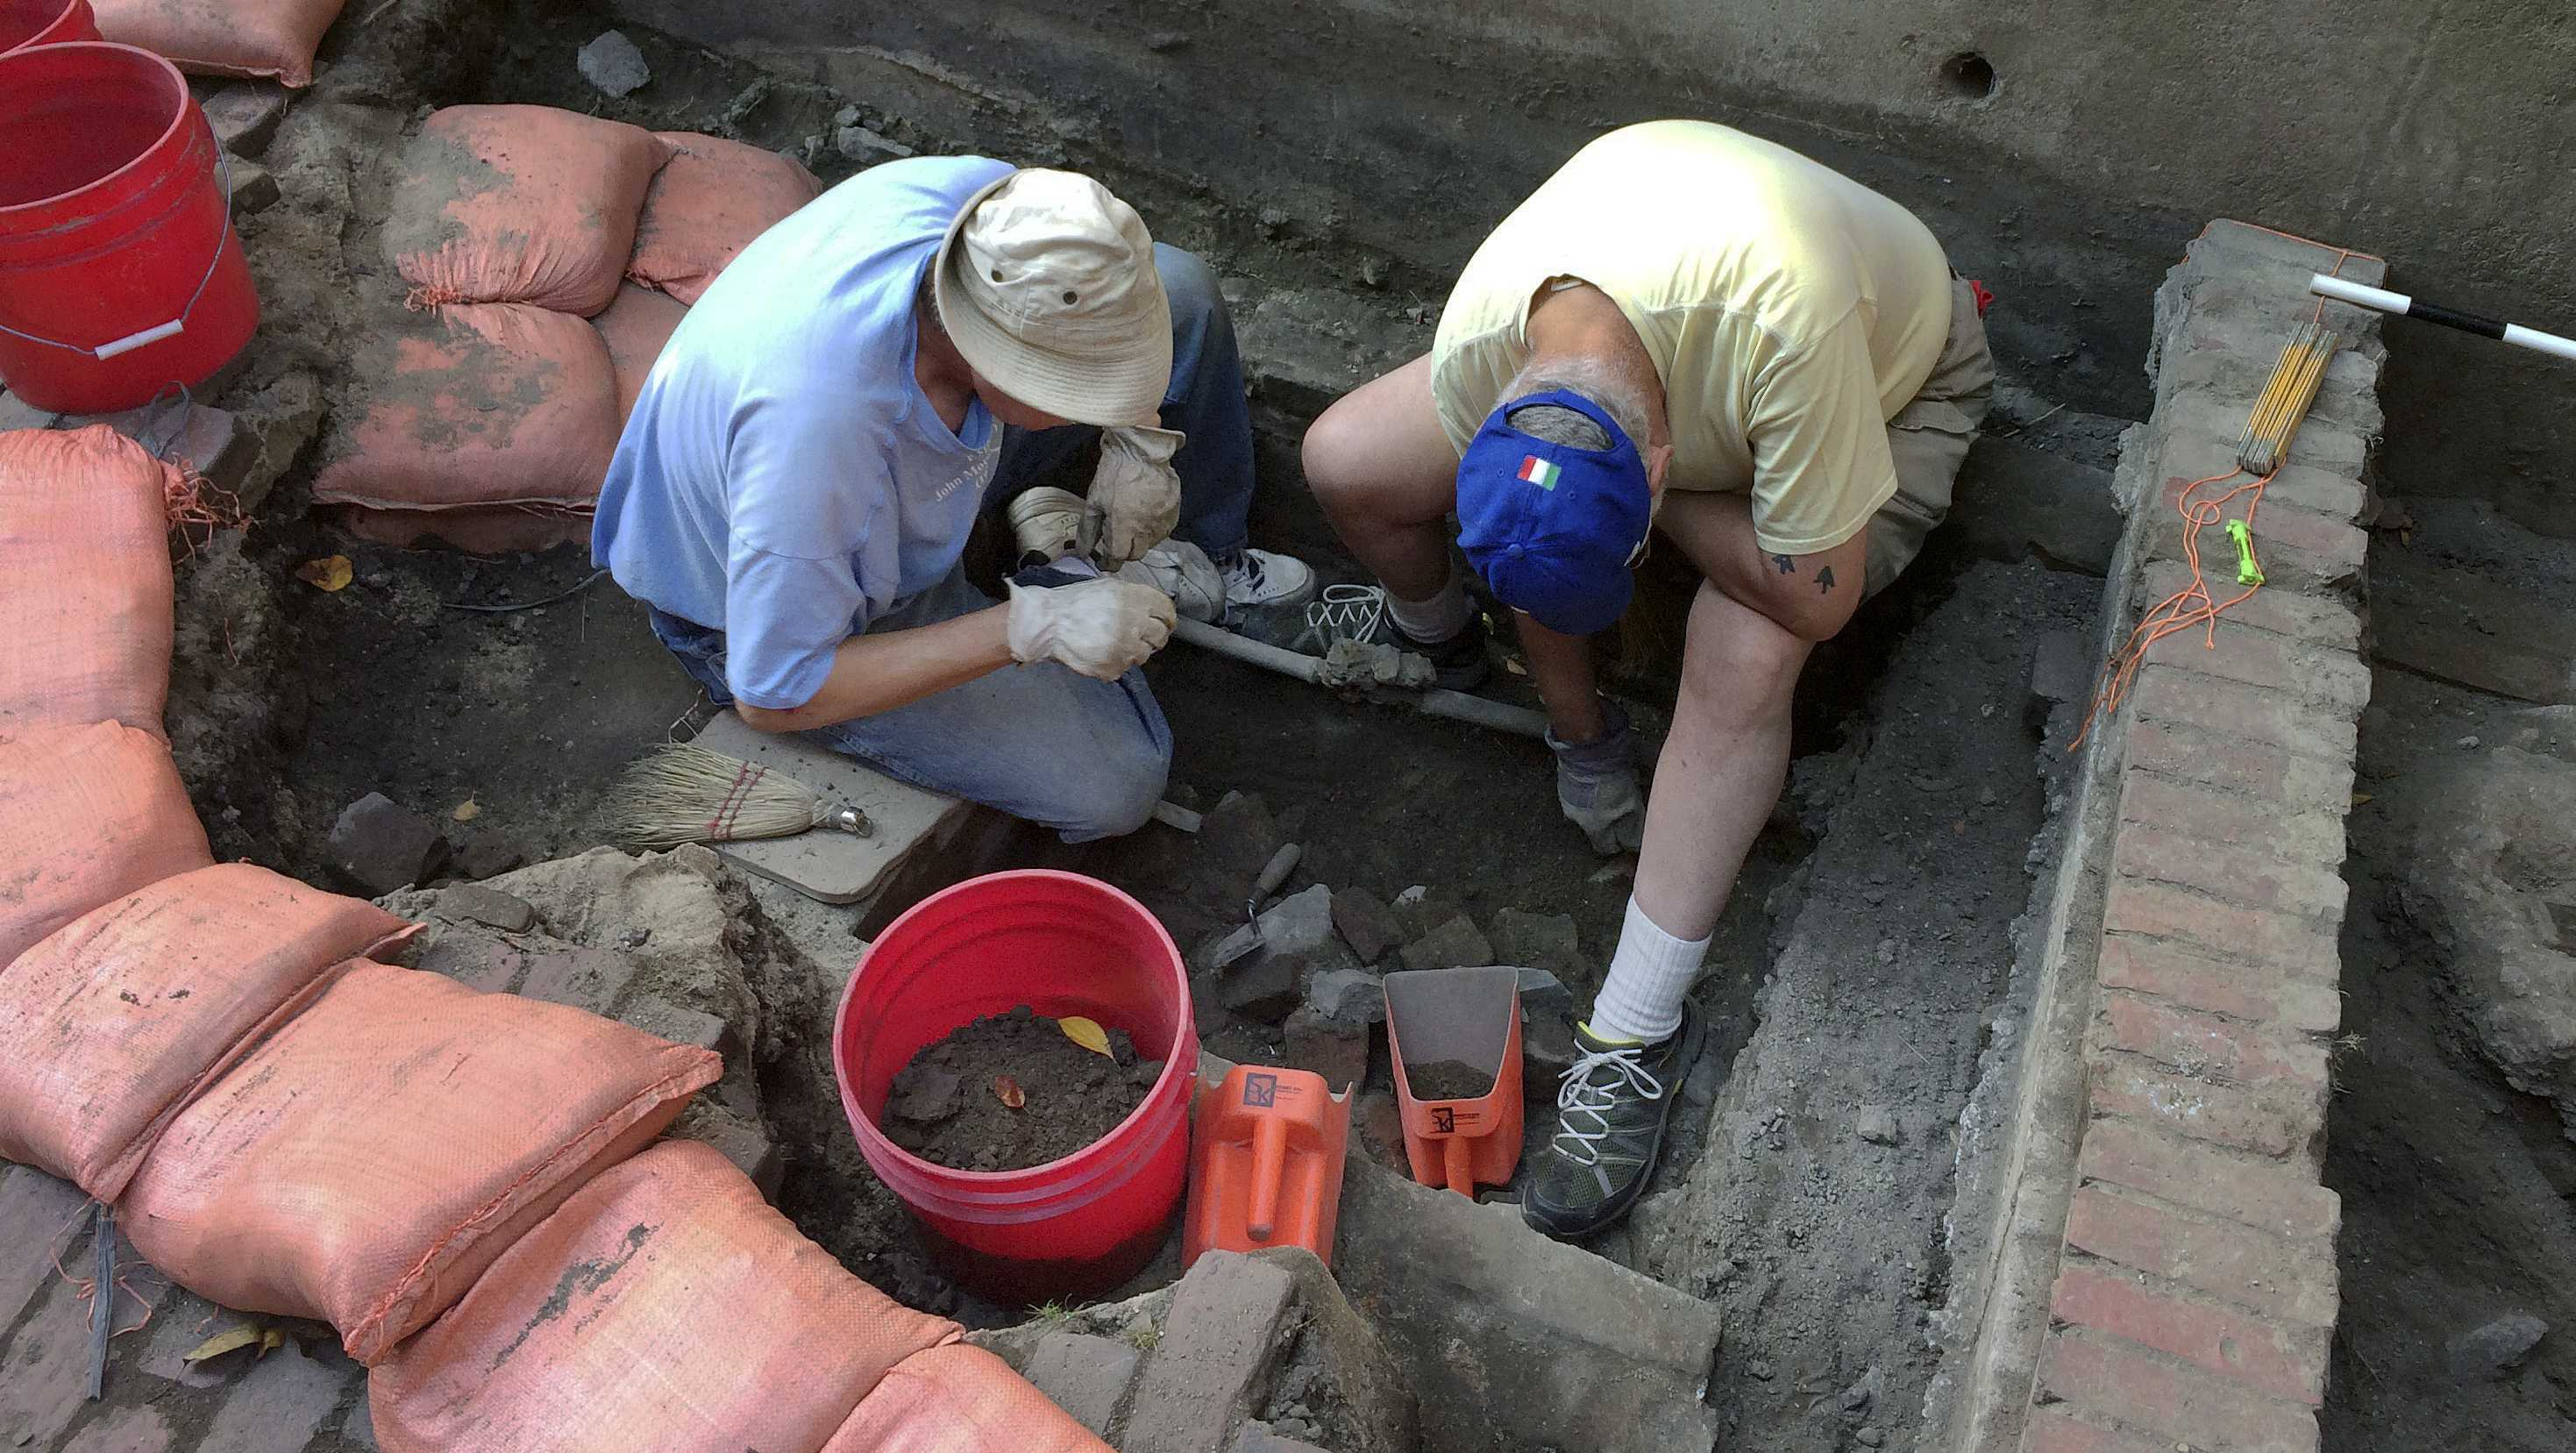 In this Sept. 28, 2017, photo, City of Boston Archaeological Program volunteers Tim Riordan, left, and Bob Sartini excavate a site that experts believe may have contained an outhouse used by Paul Revere. Fragments of pottery and a tobacco pipe already have been recovered from the dig outside the Pierce-Hichborn House in Boston's historic North End. Experts say the house, built next to Revere's house in 1711, was owned by one of Revere's cousins, and the renowned American patriot himself likely visited on numerous occasions.